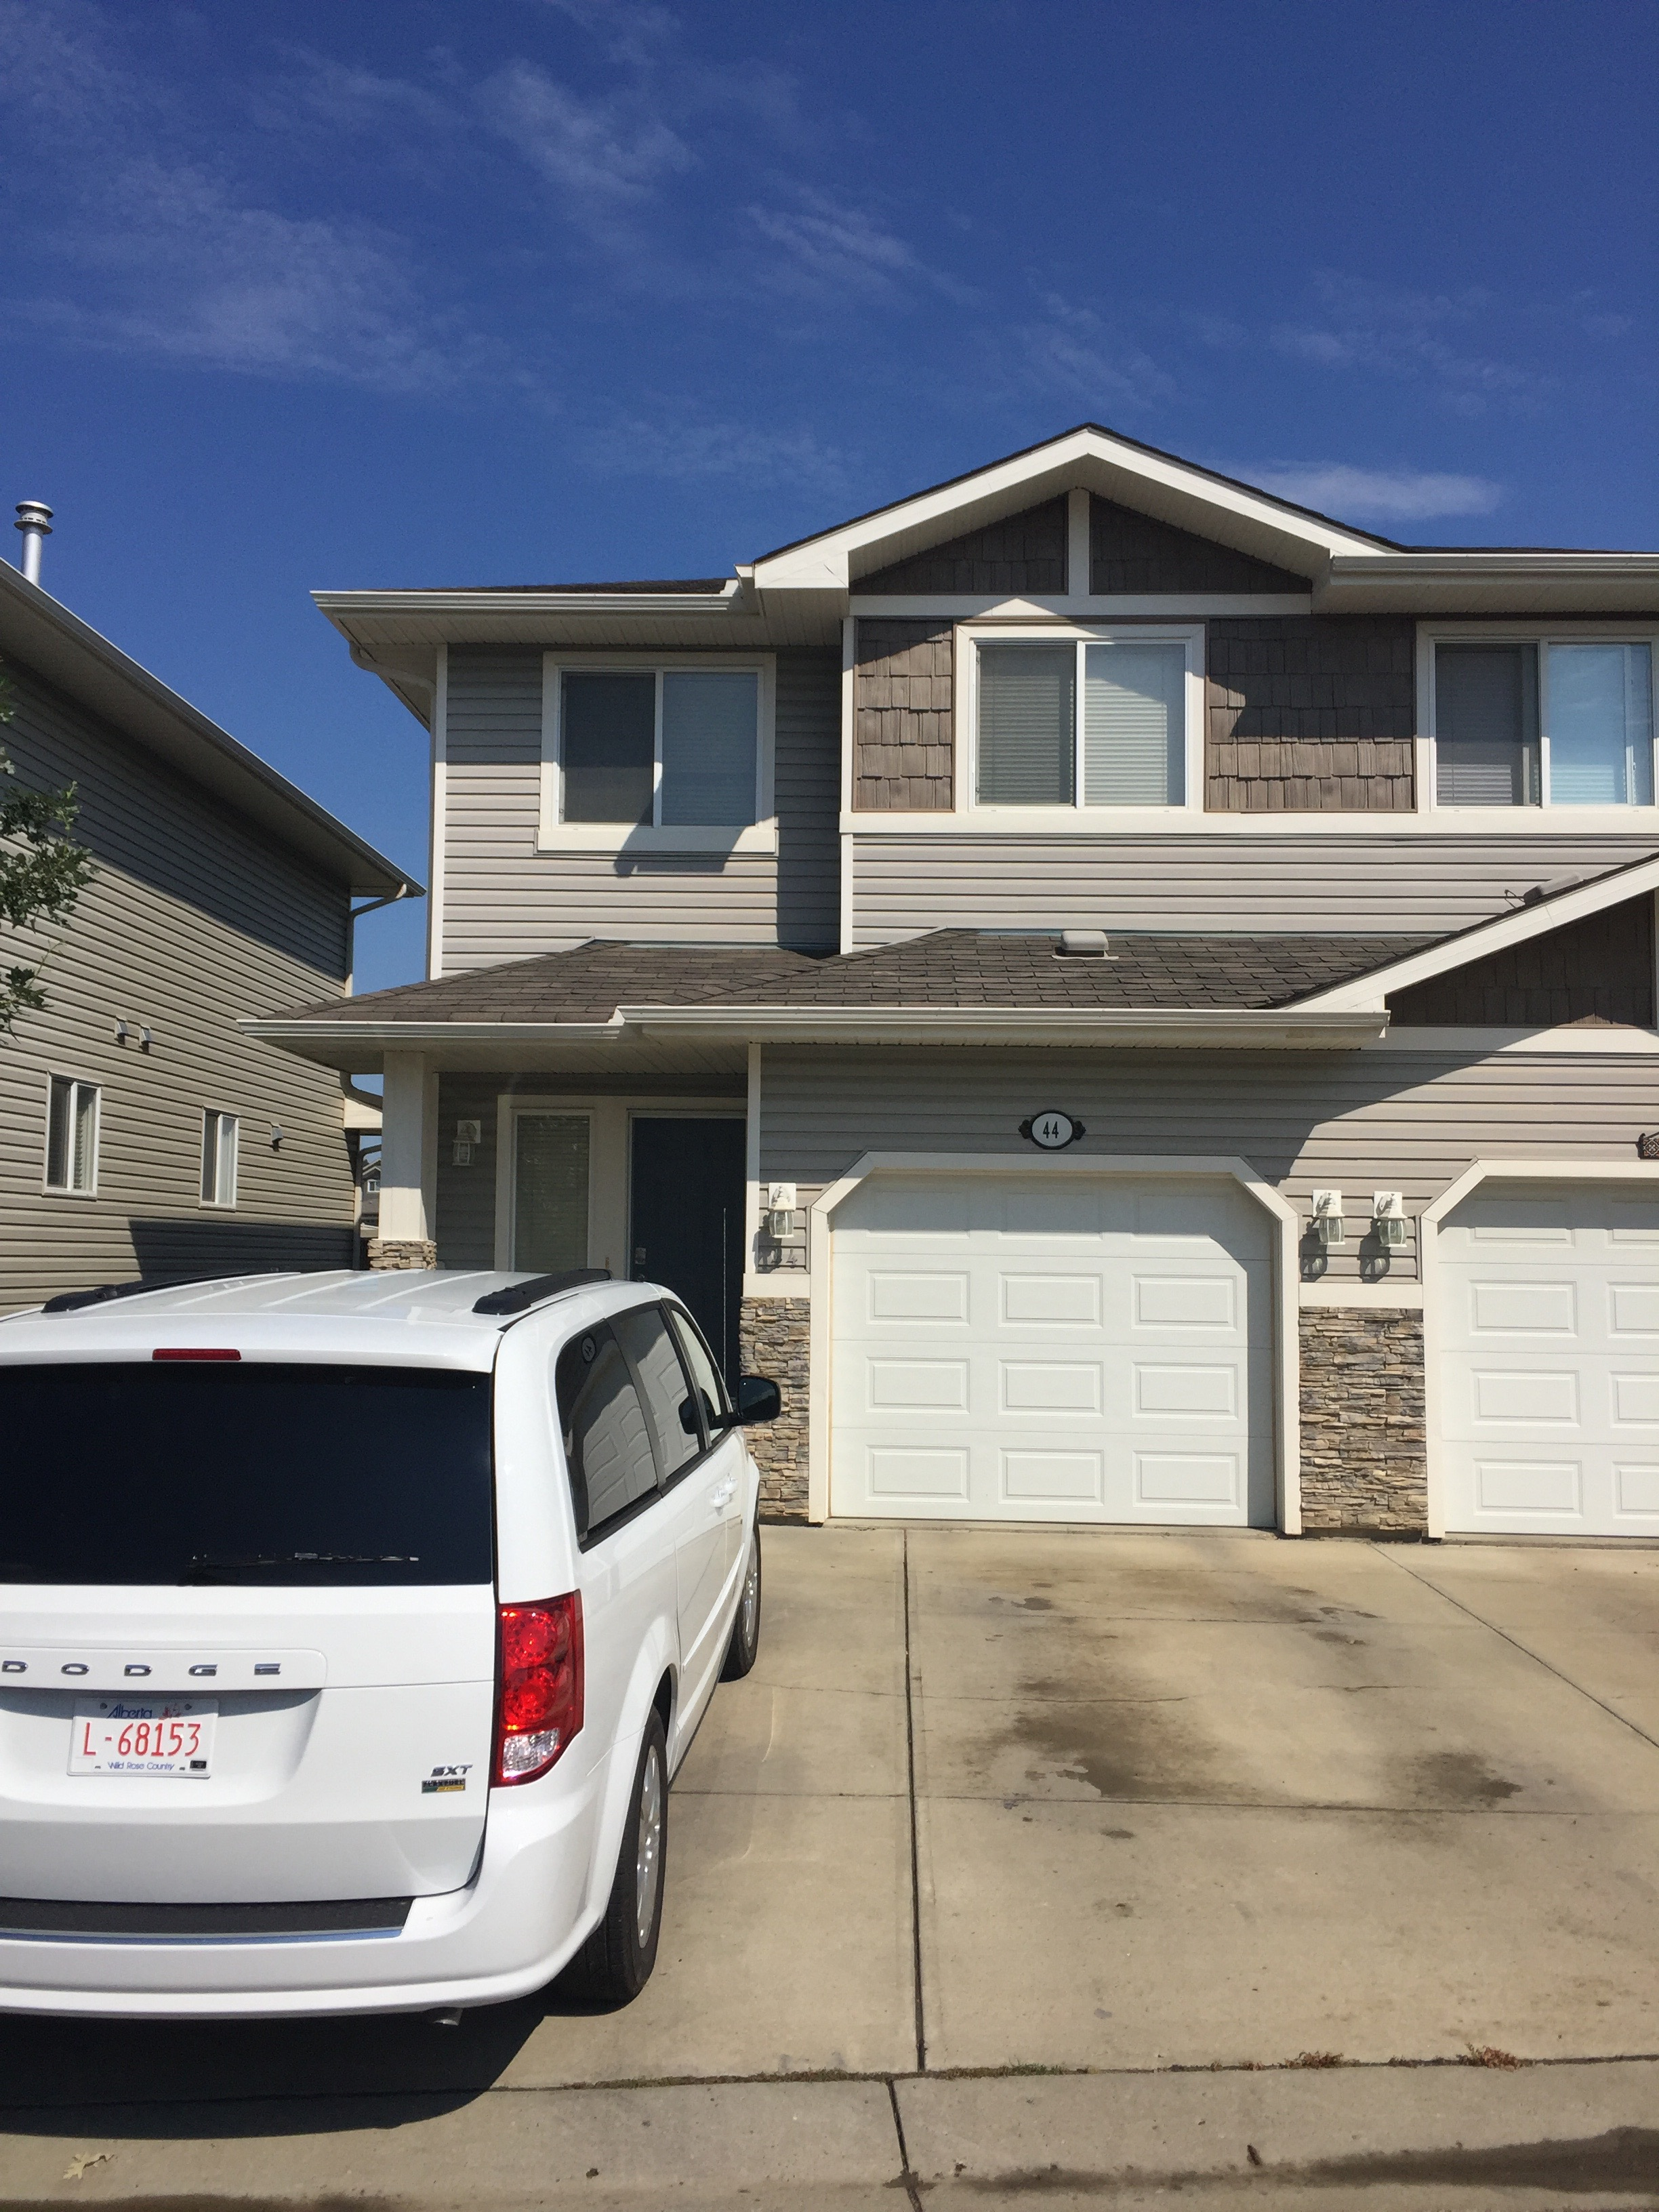 3 bedroom 3.5 bath duplex. ST-ALBERT. Finished basement